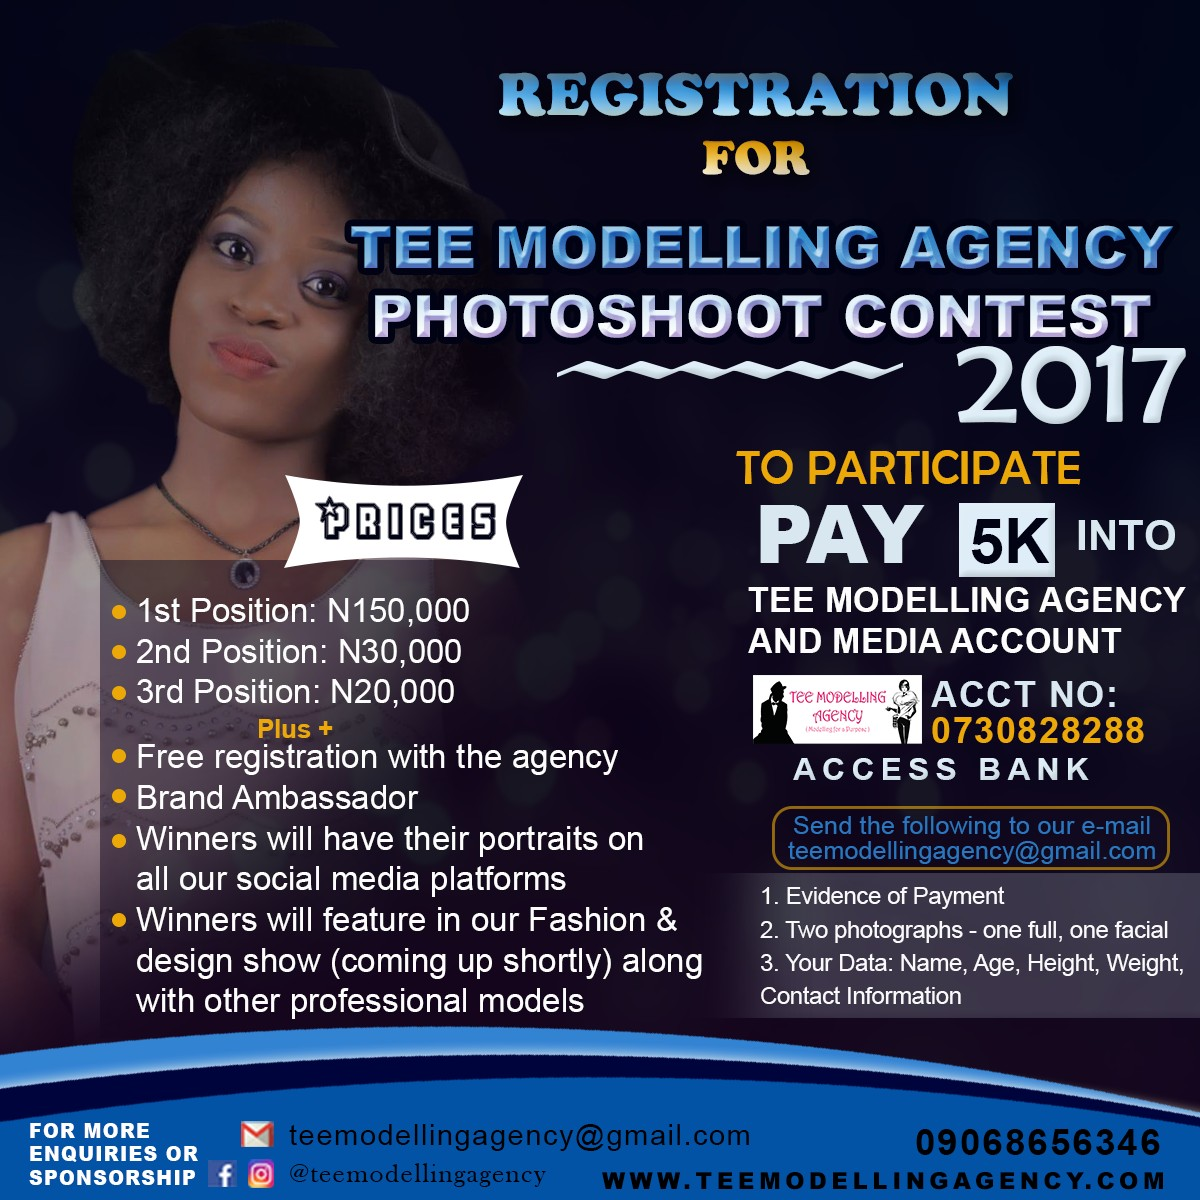 TEE MODELLING AGENCY CONTEST